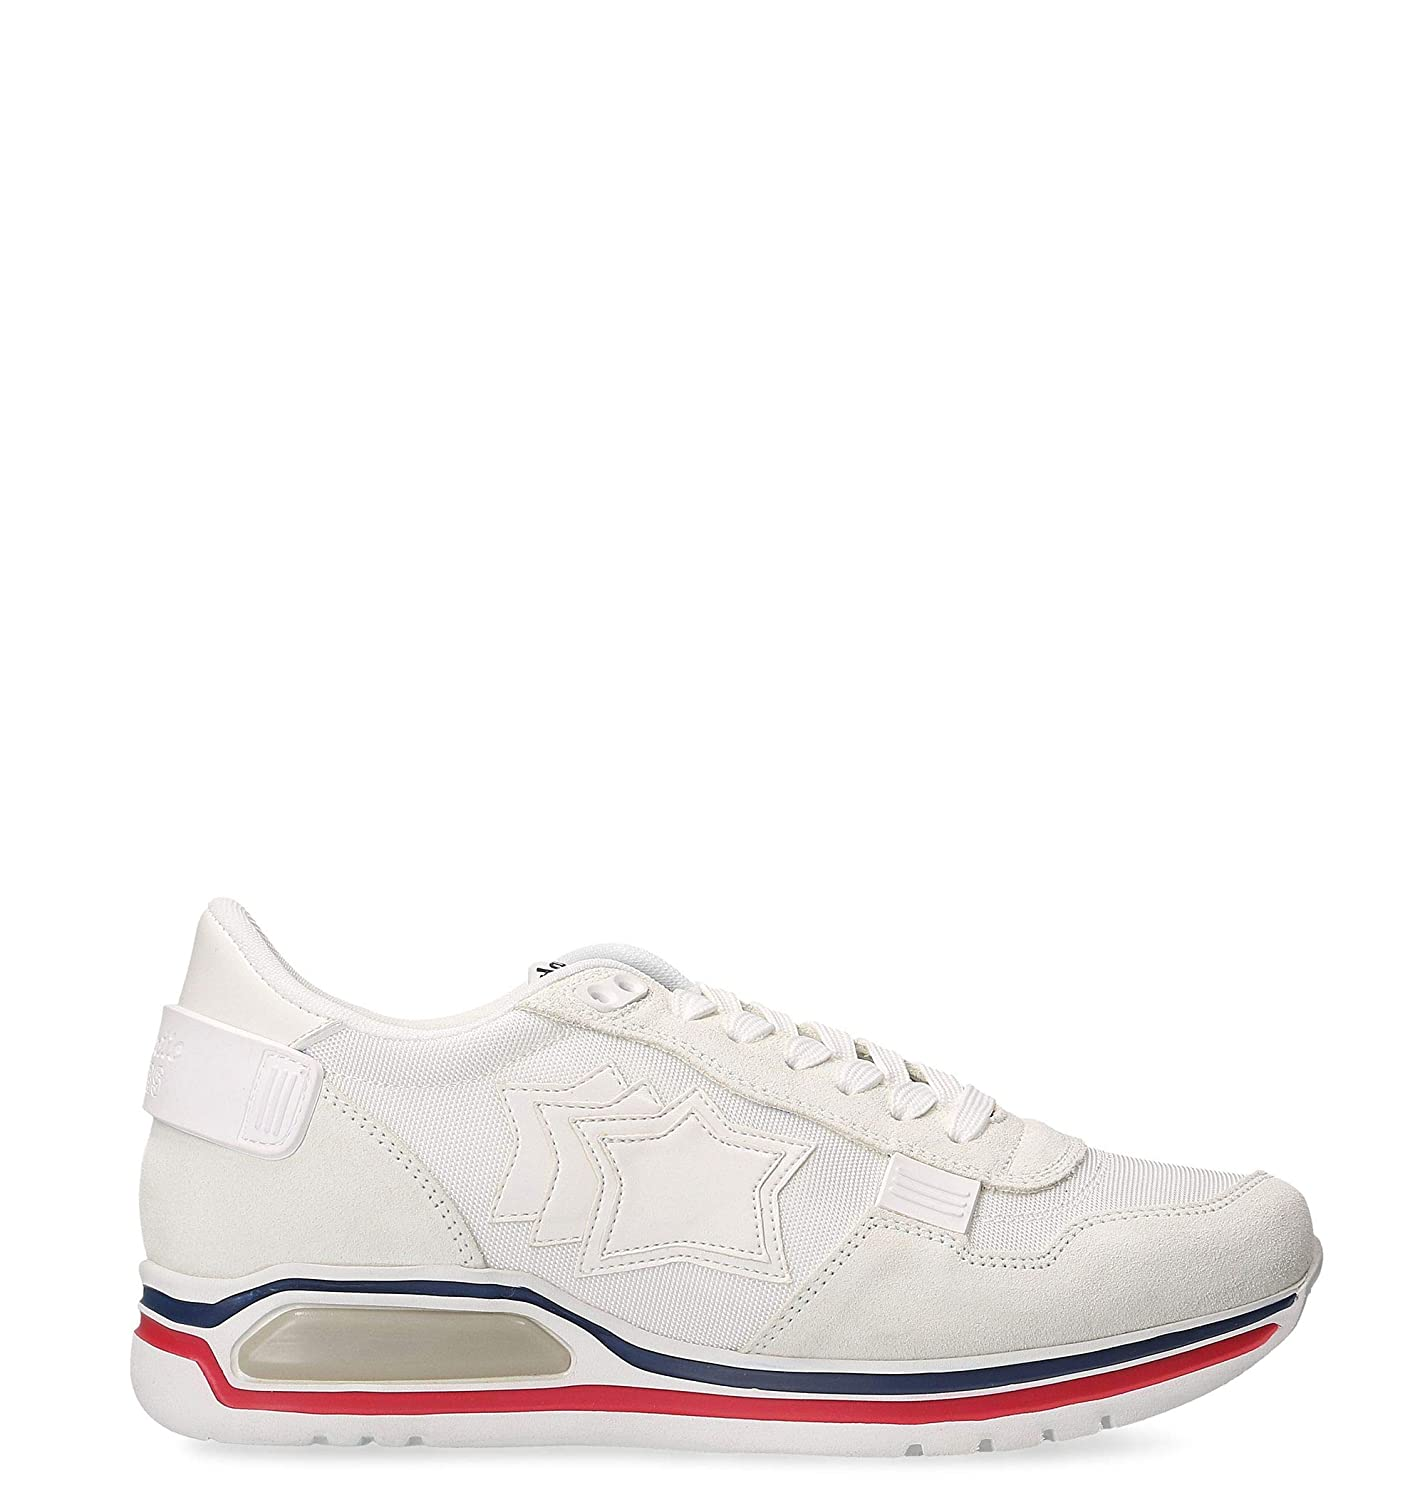 - ATLANTIC STARS Men's PEGASUSLIT1J03 White Suede Sneakers